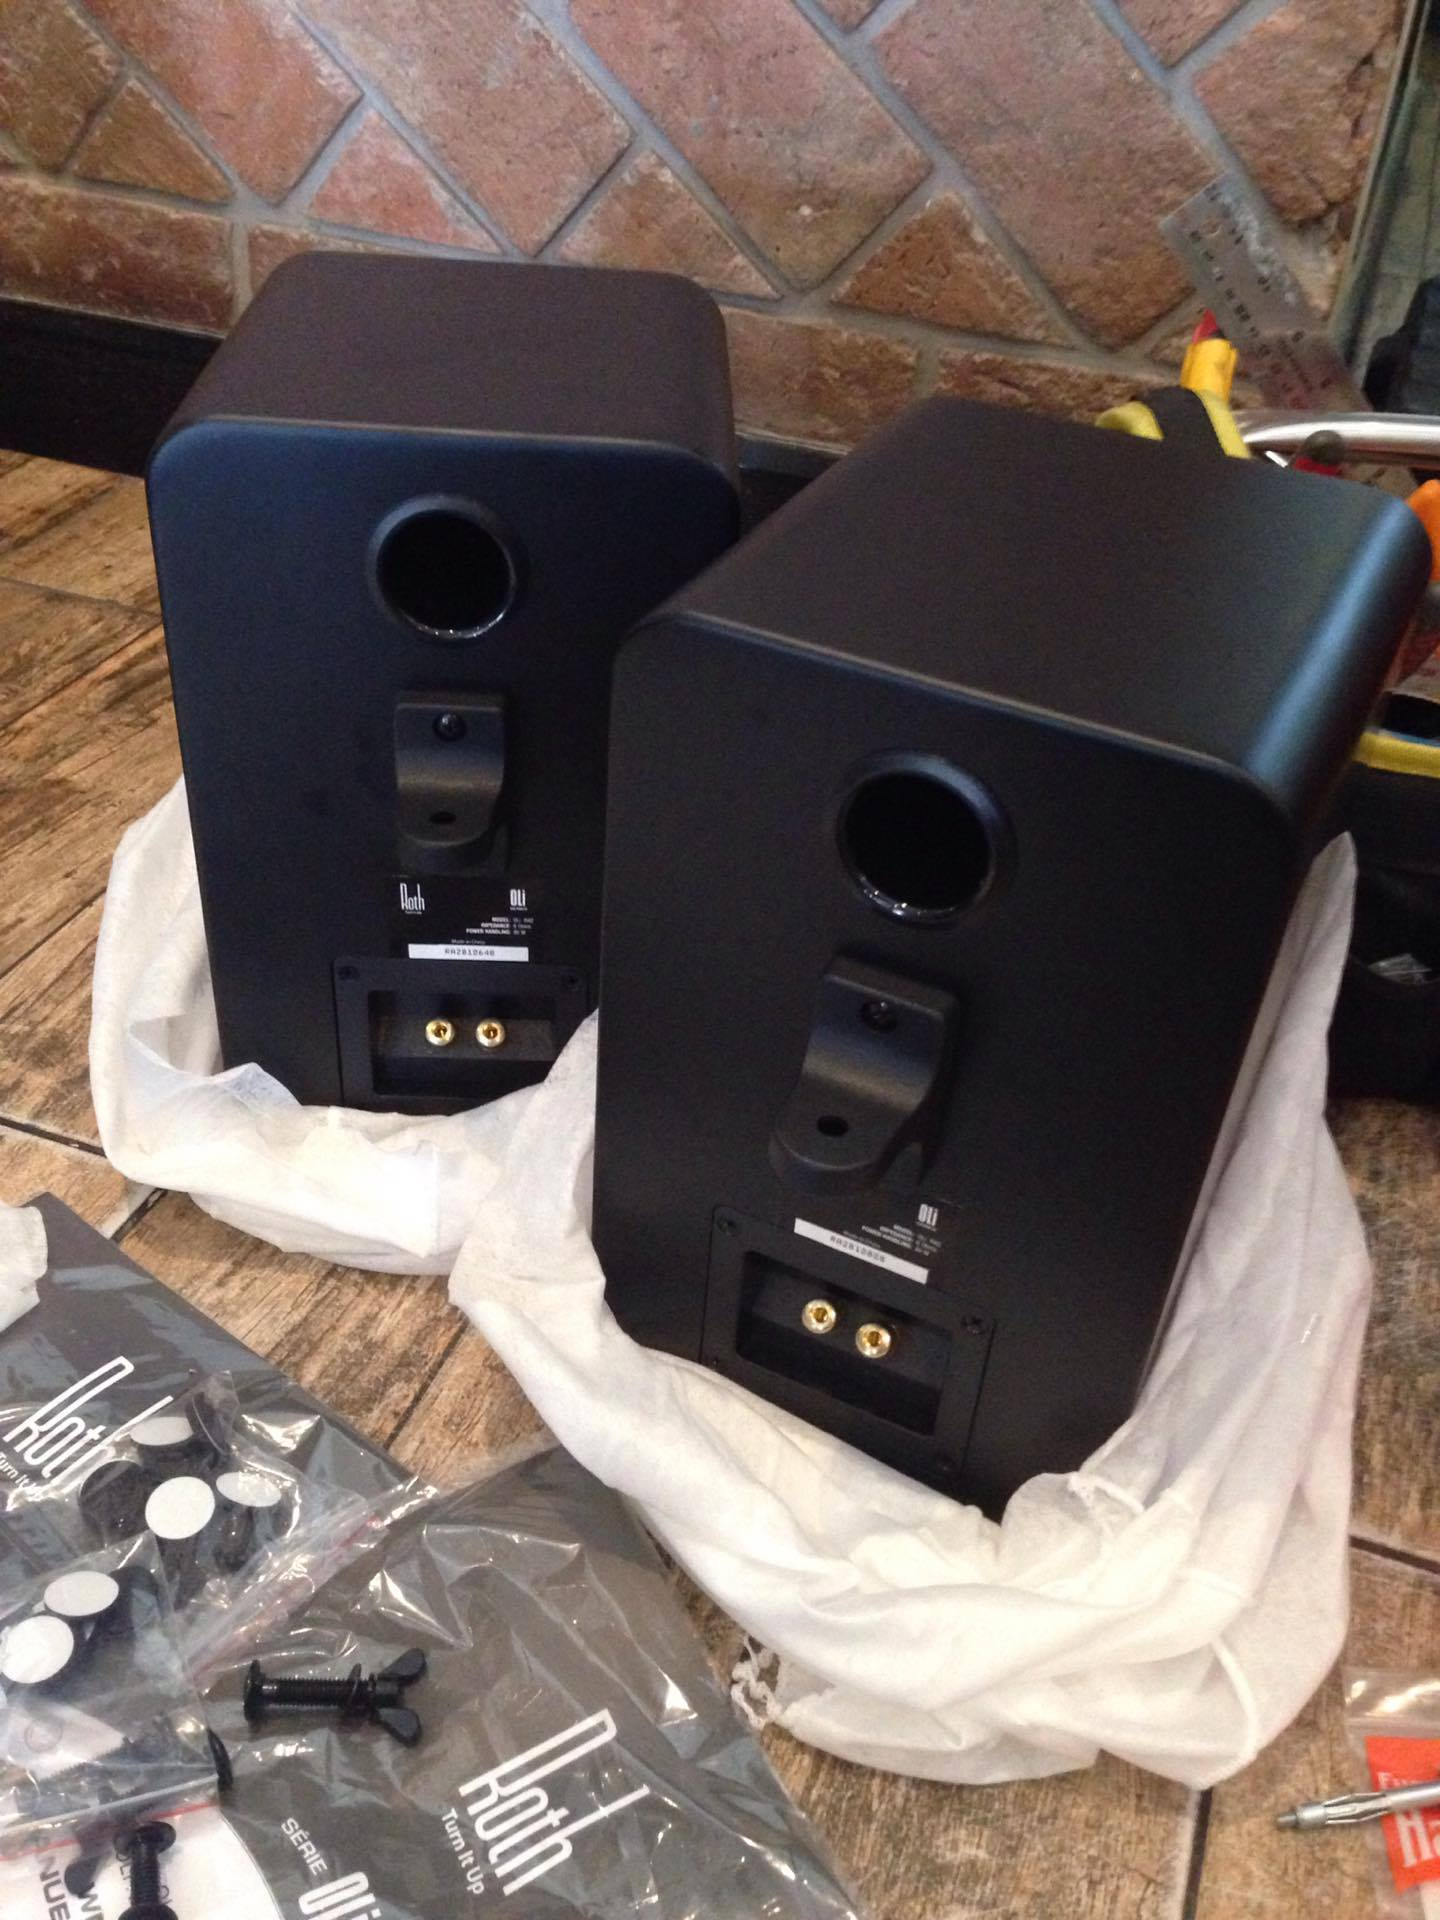 Rear Ported Roth Speakers and their mounts.